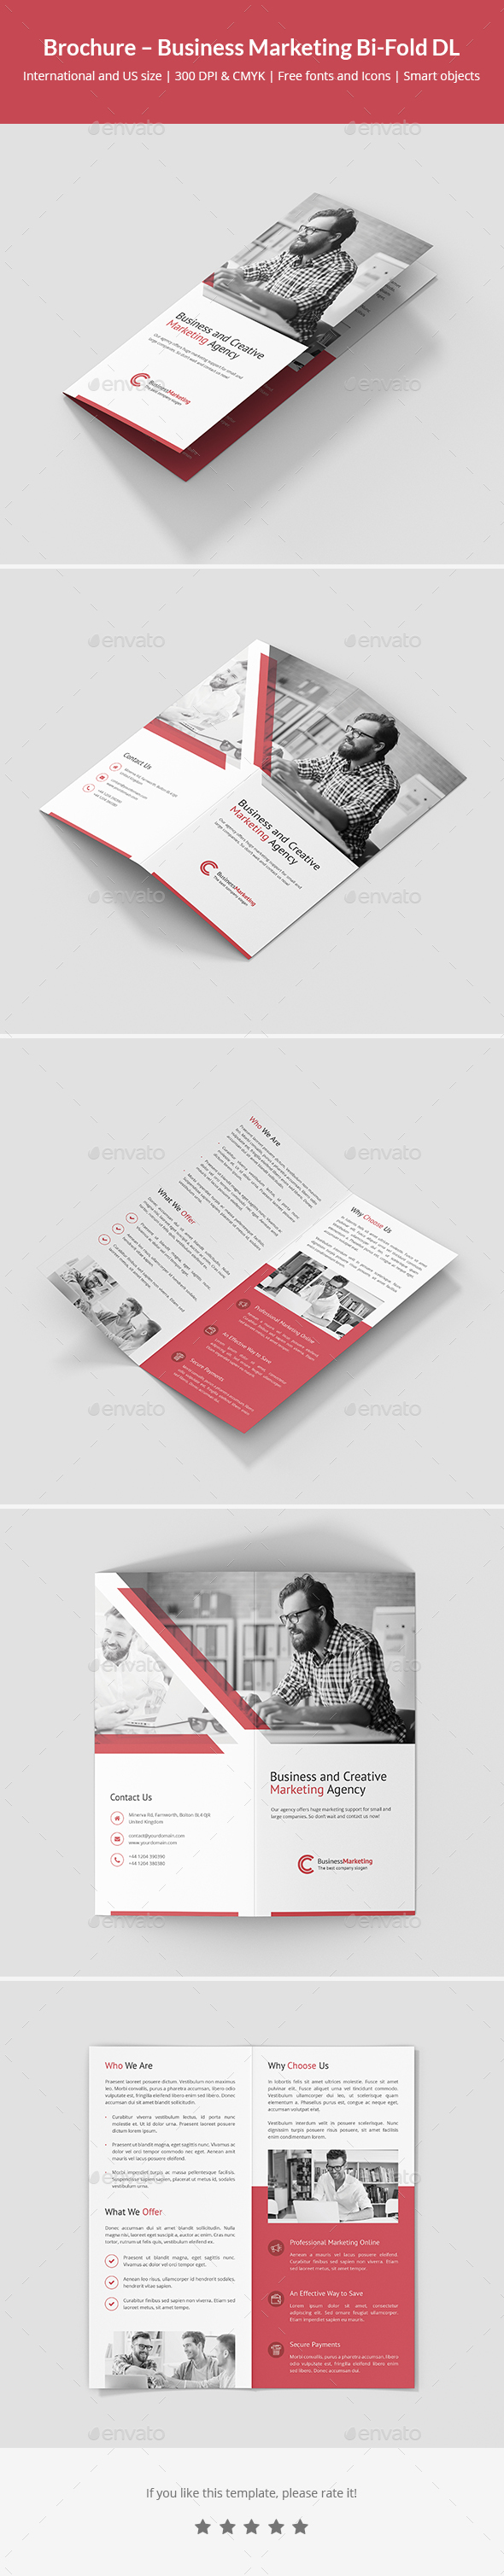 Brochure – Business Marketing Bi-Fold DL - Corporate Brochures